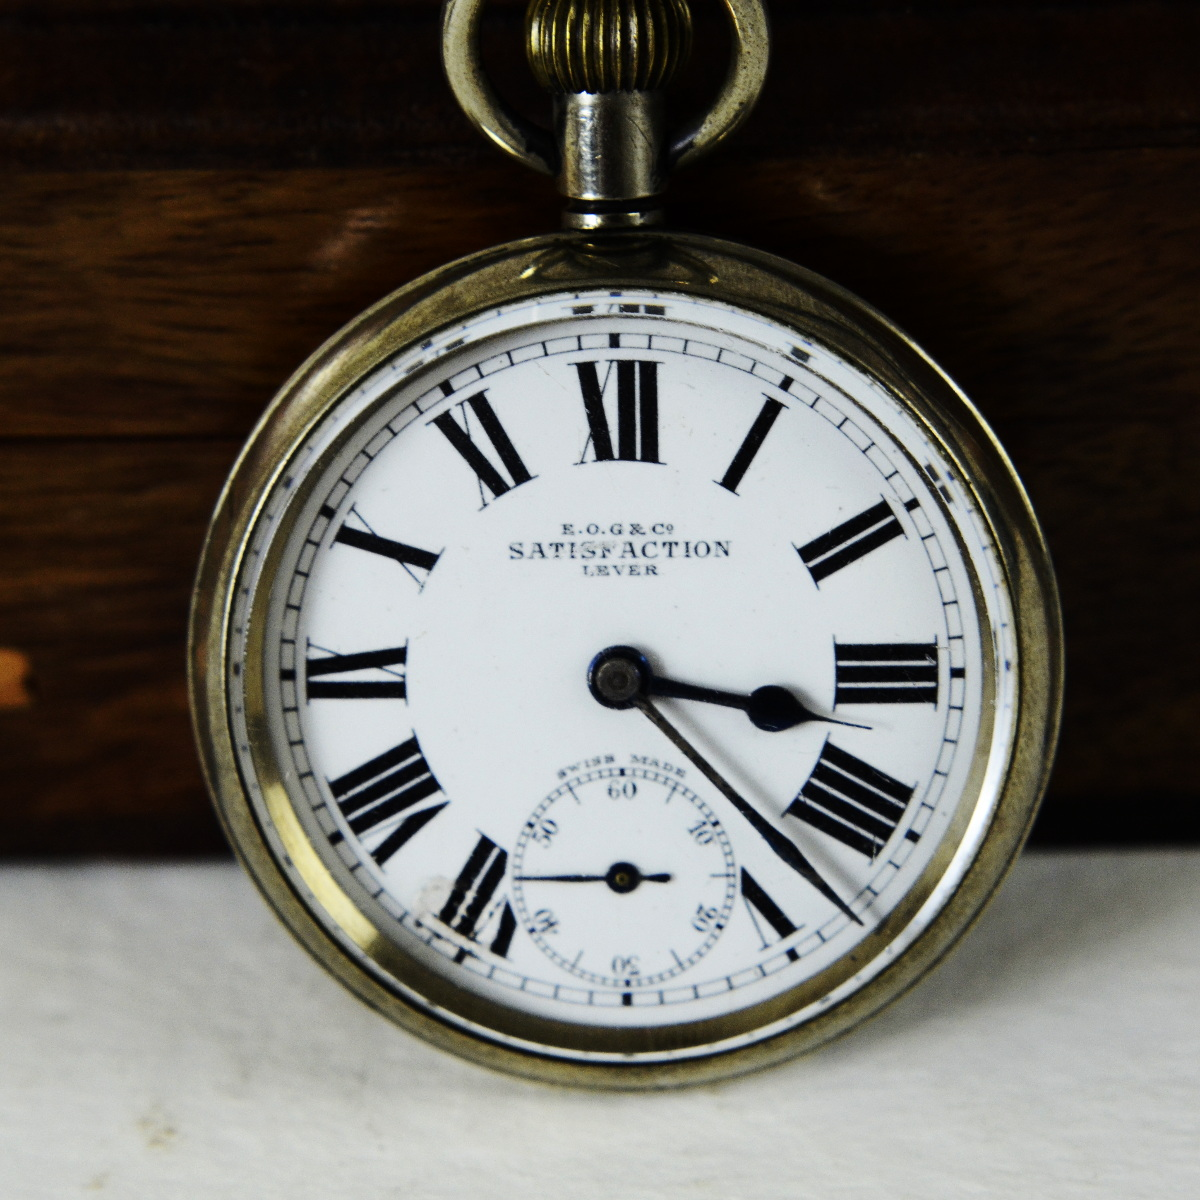 Antique Swiss Made Satisfaction Pocket Watch Antikcart